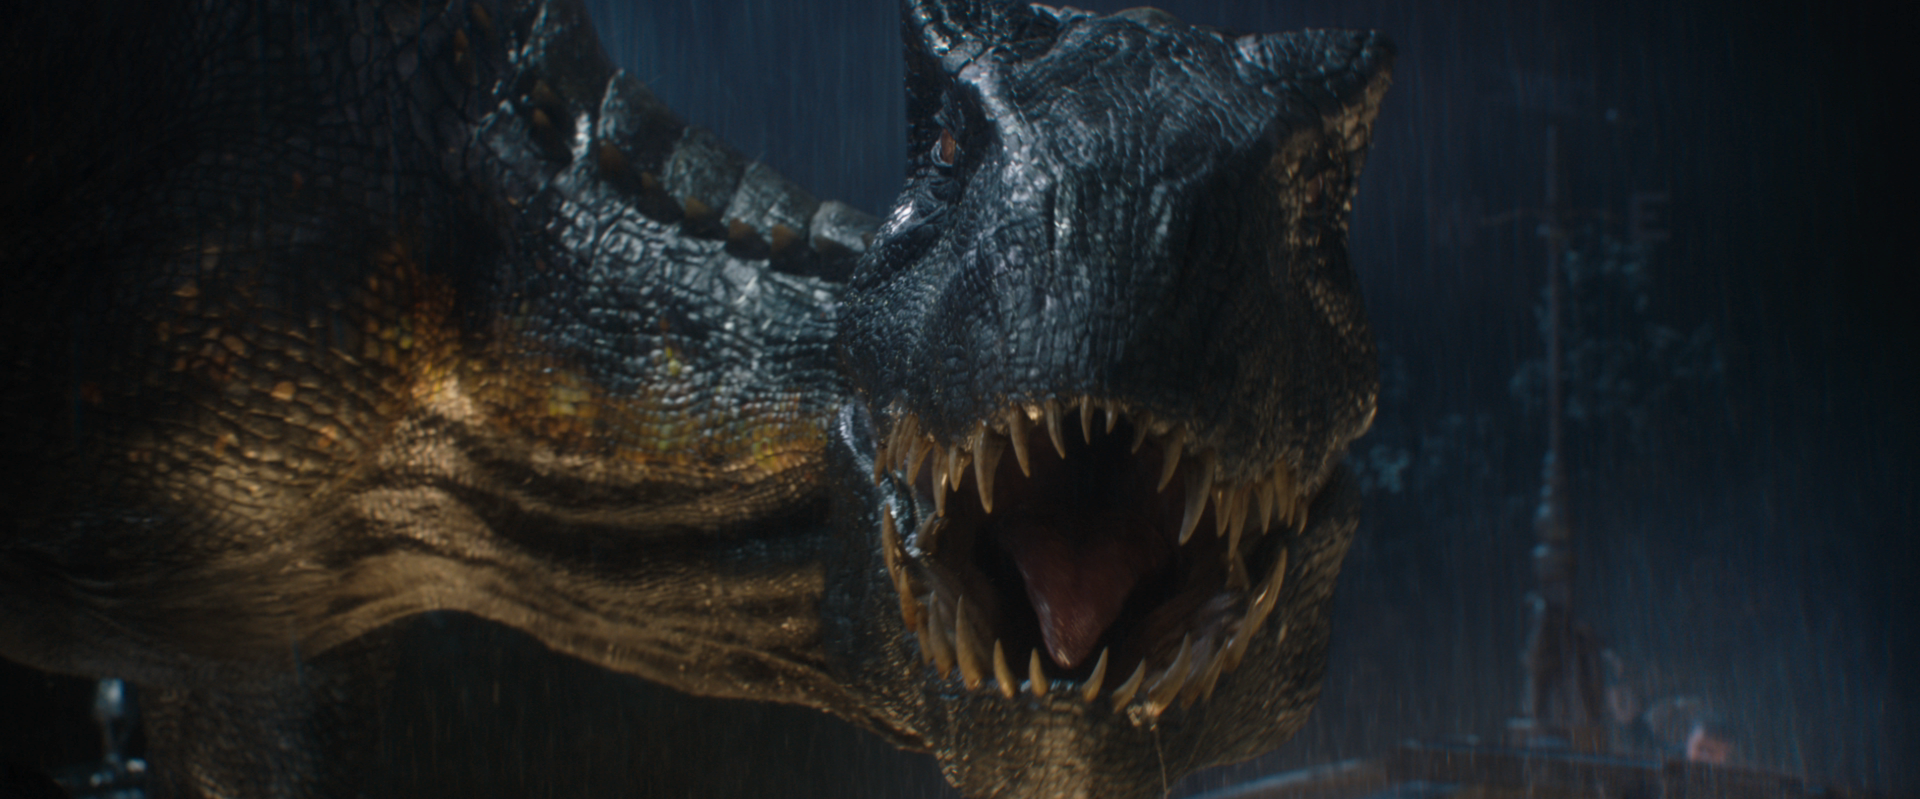 39 Jurassic World 3 39 Will Put the Focus Back on Real